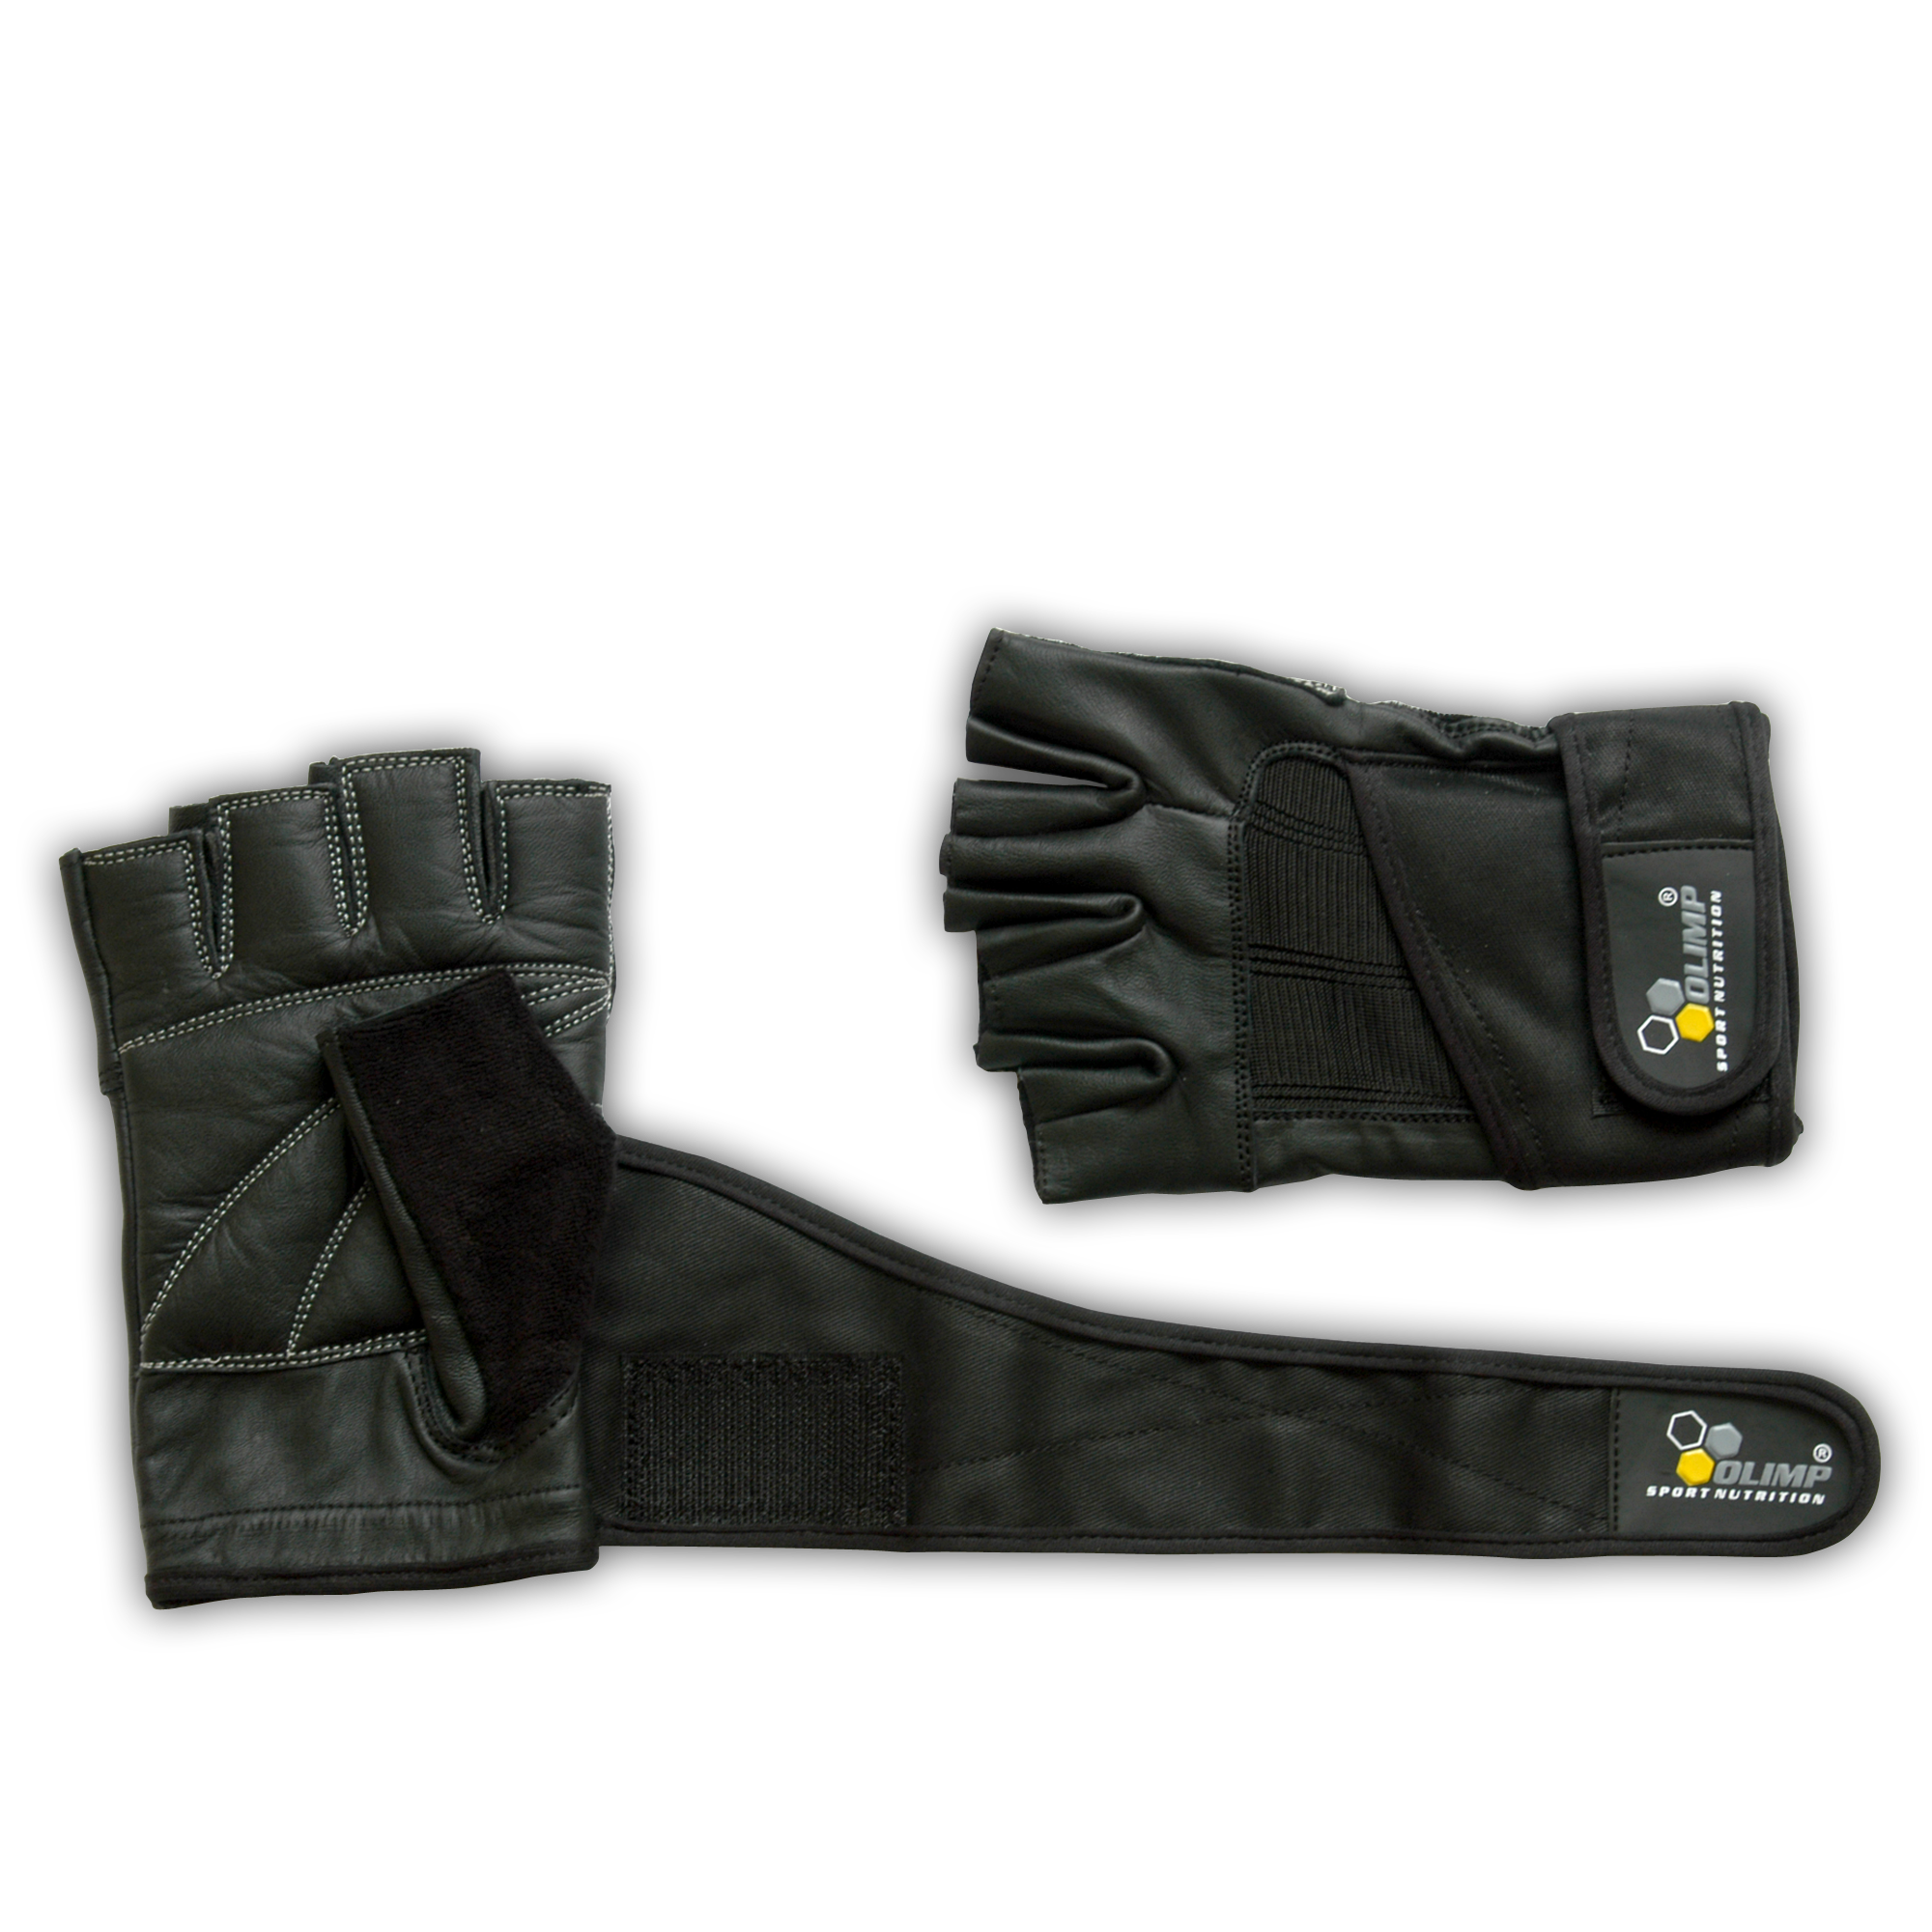 Olimp Sport Nutrition Hardcore Professional Gloves pair